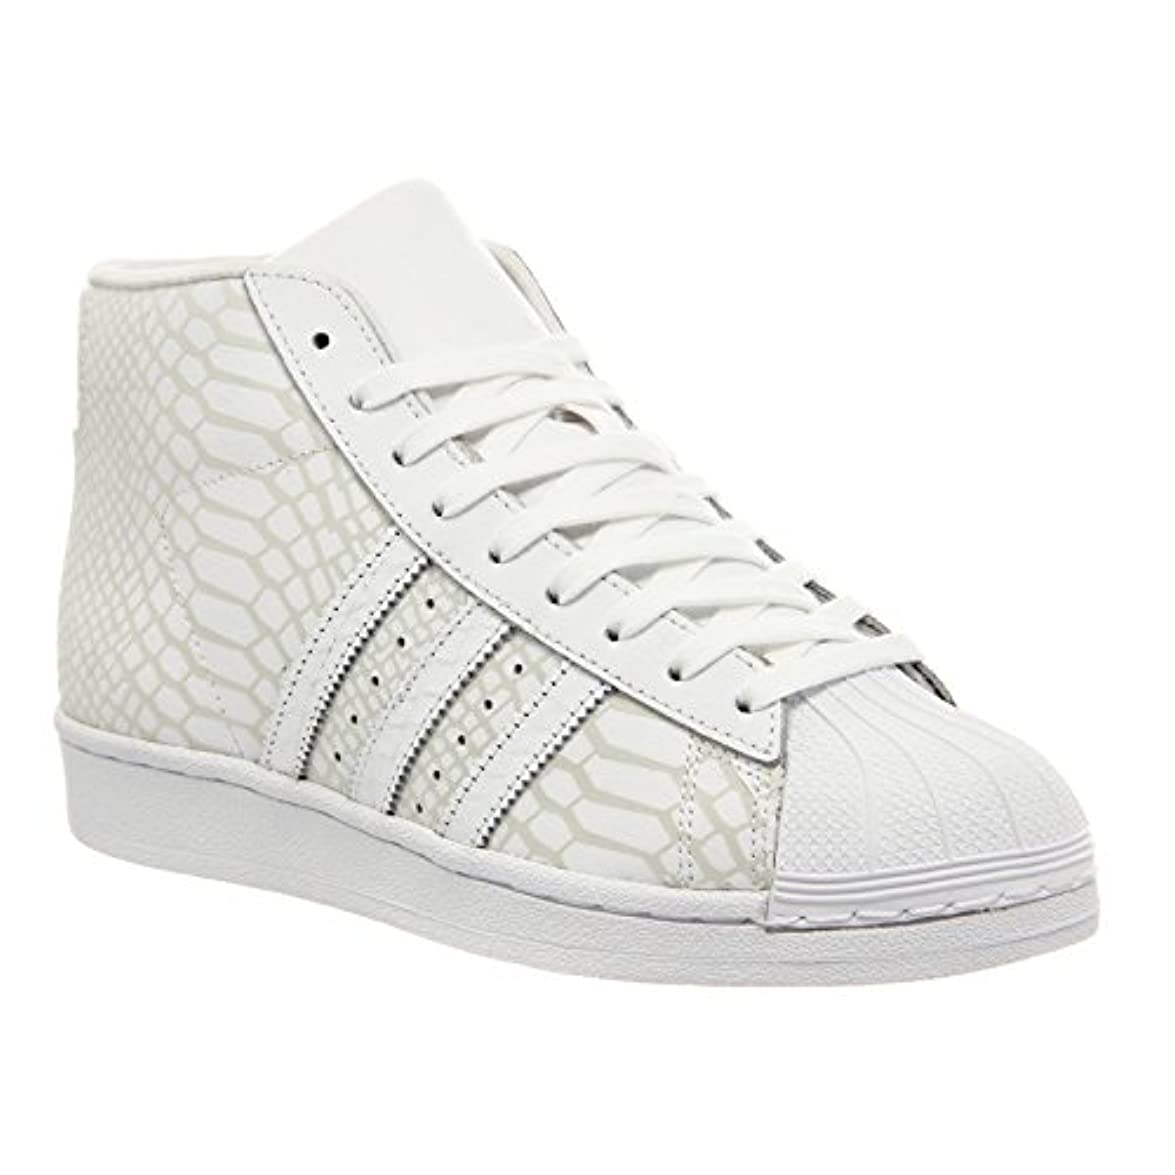 Adidas Originals Pro Model Chaussures Mode Sneakers Unisex Blanc